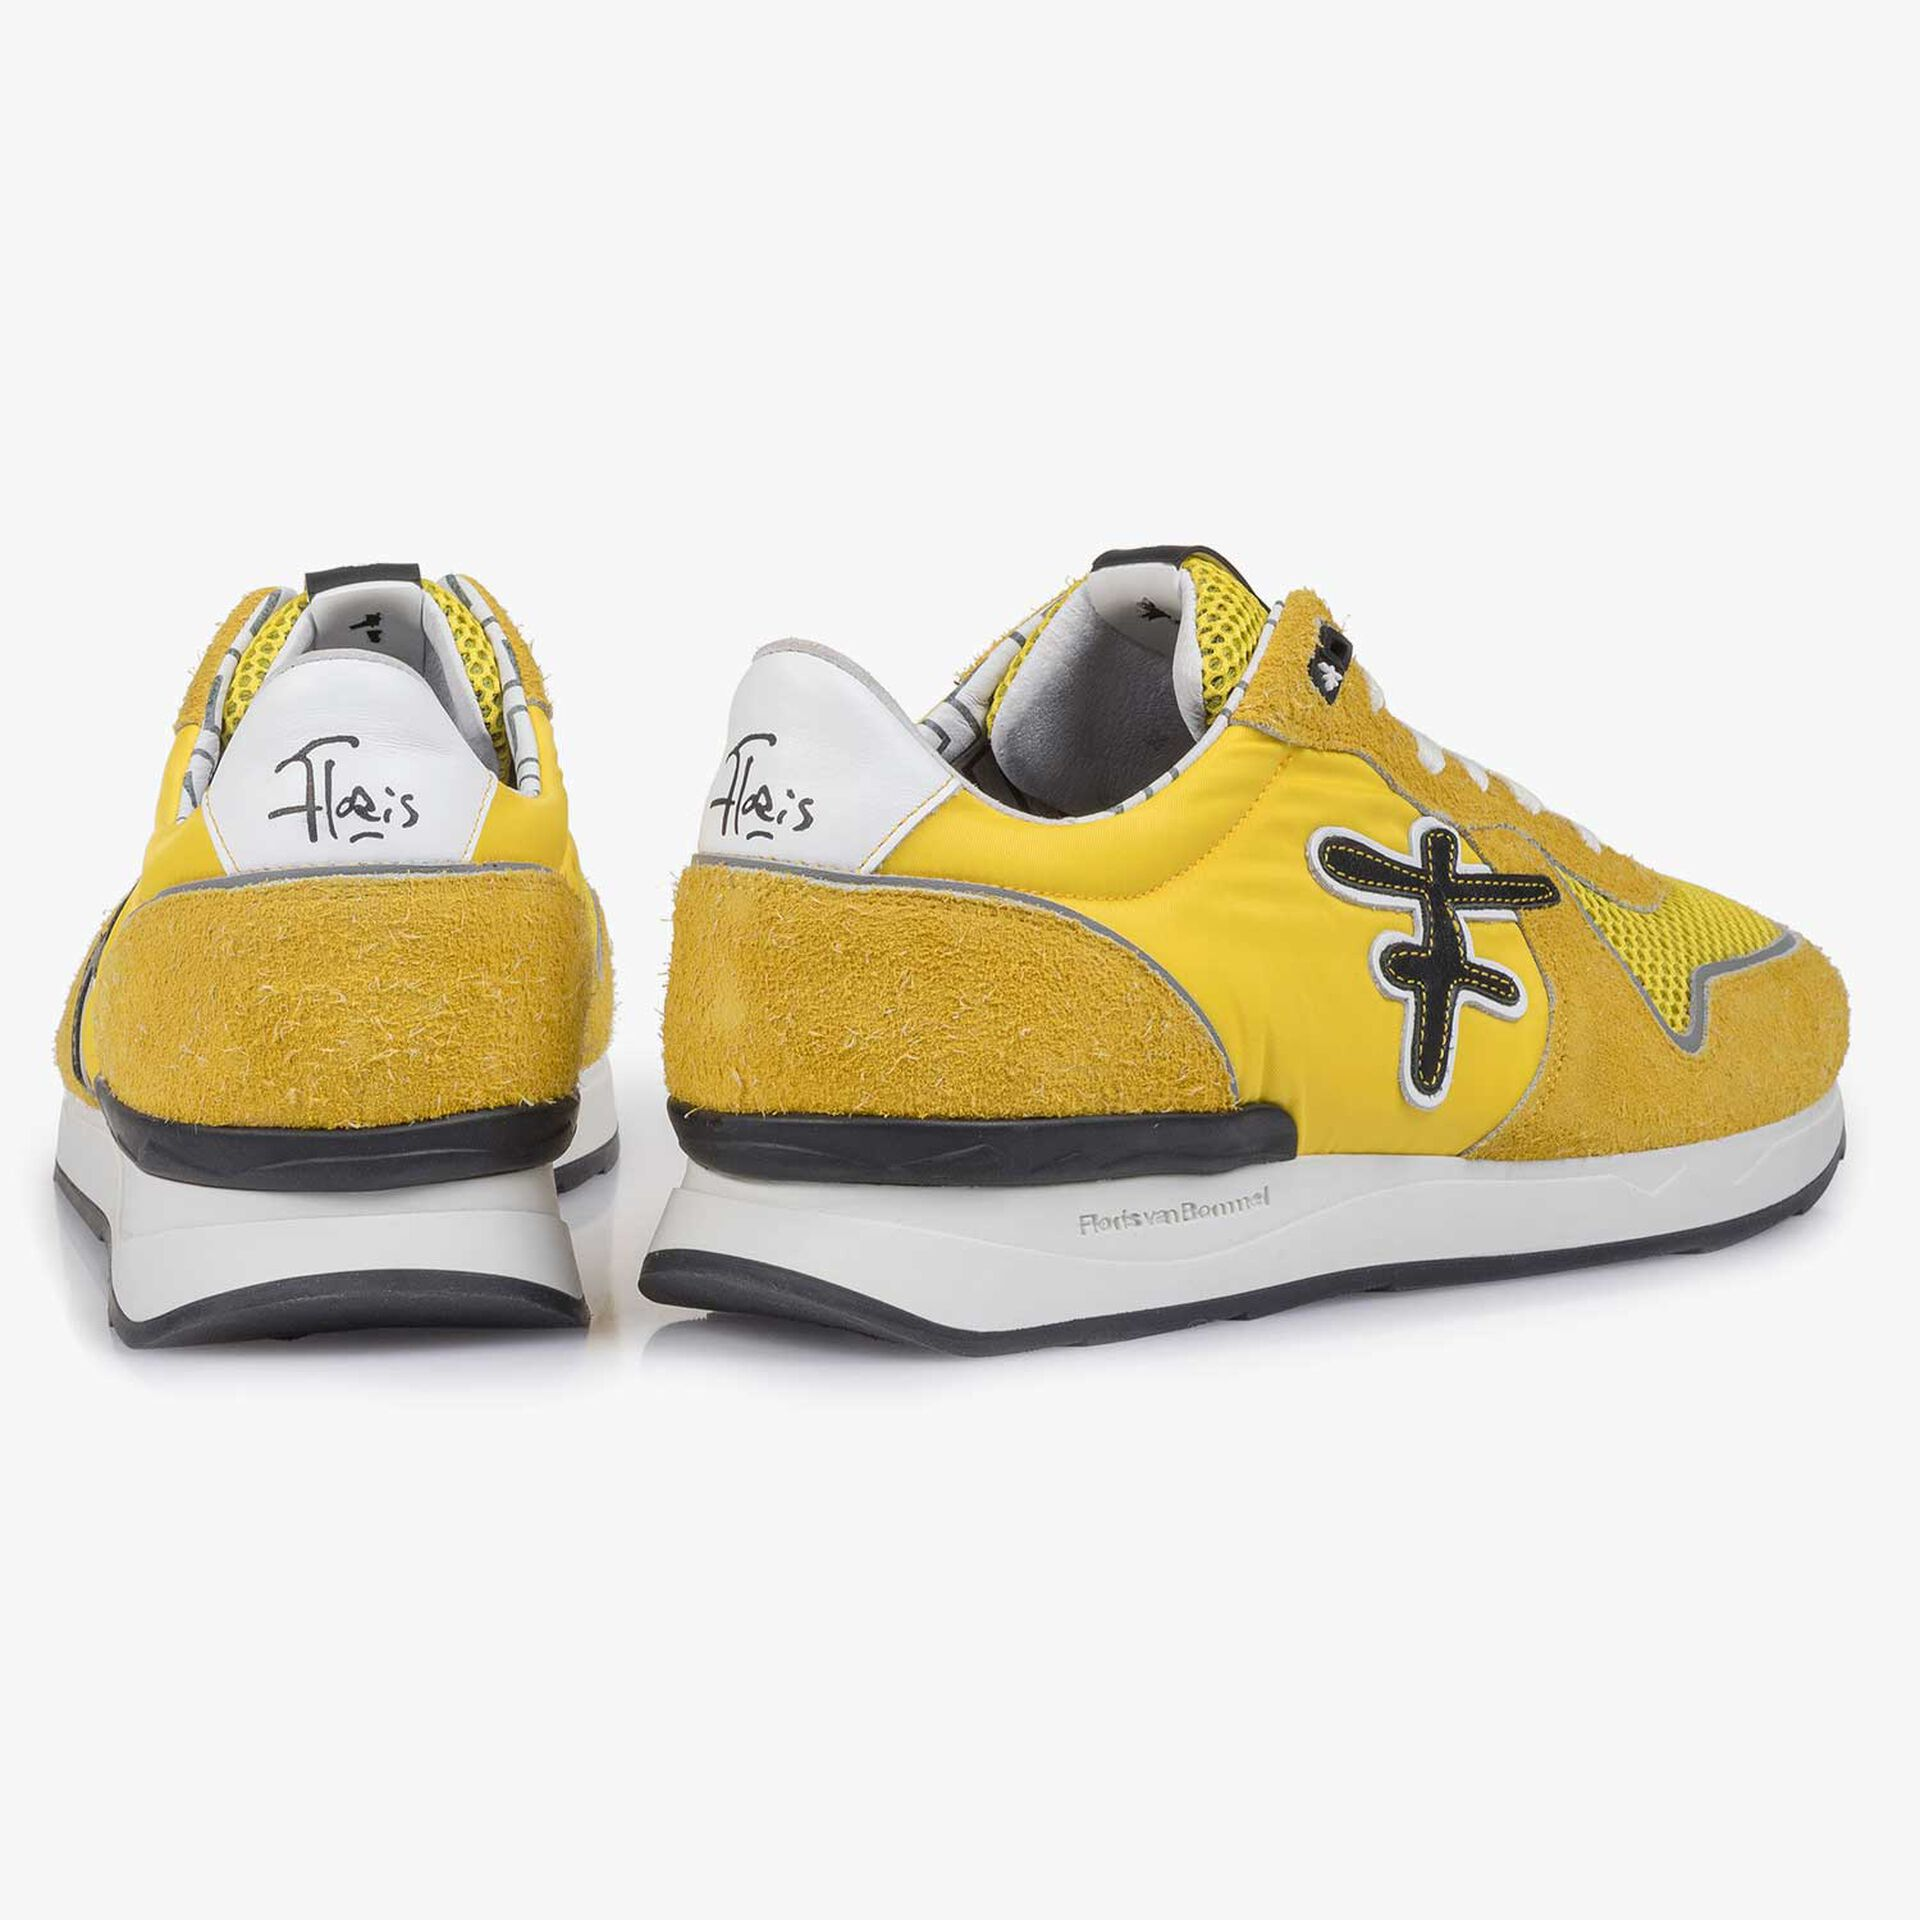 Yellow-black suede leather sneaker